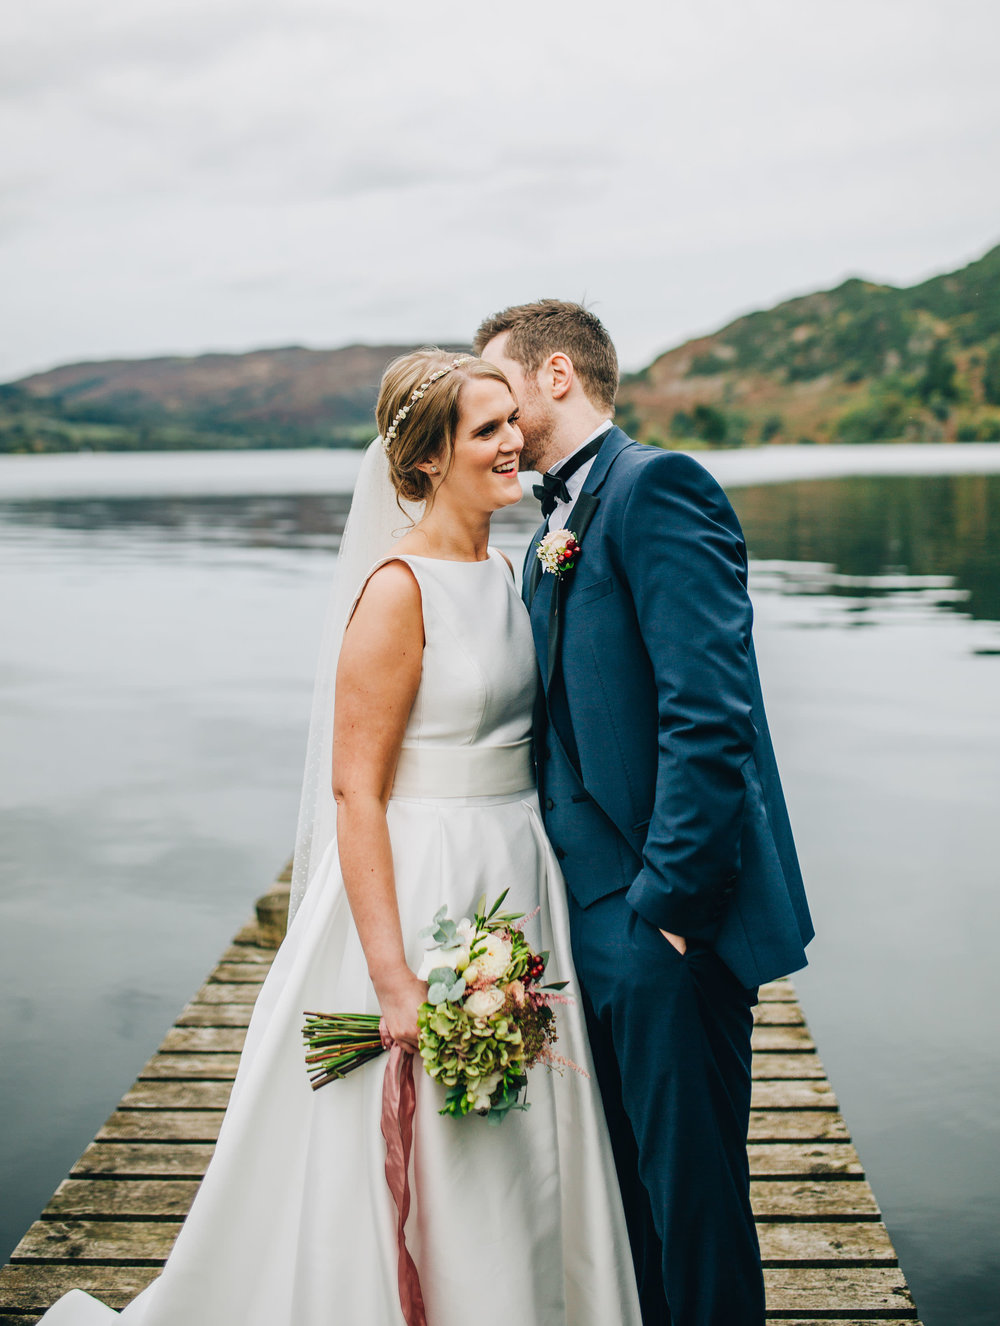 wedding pictures from the Lake district